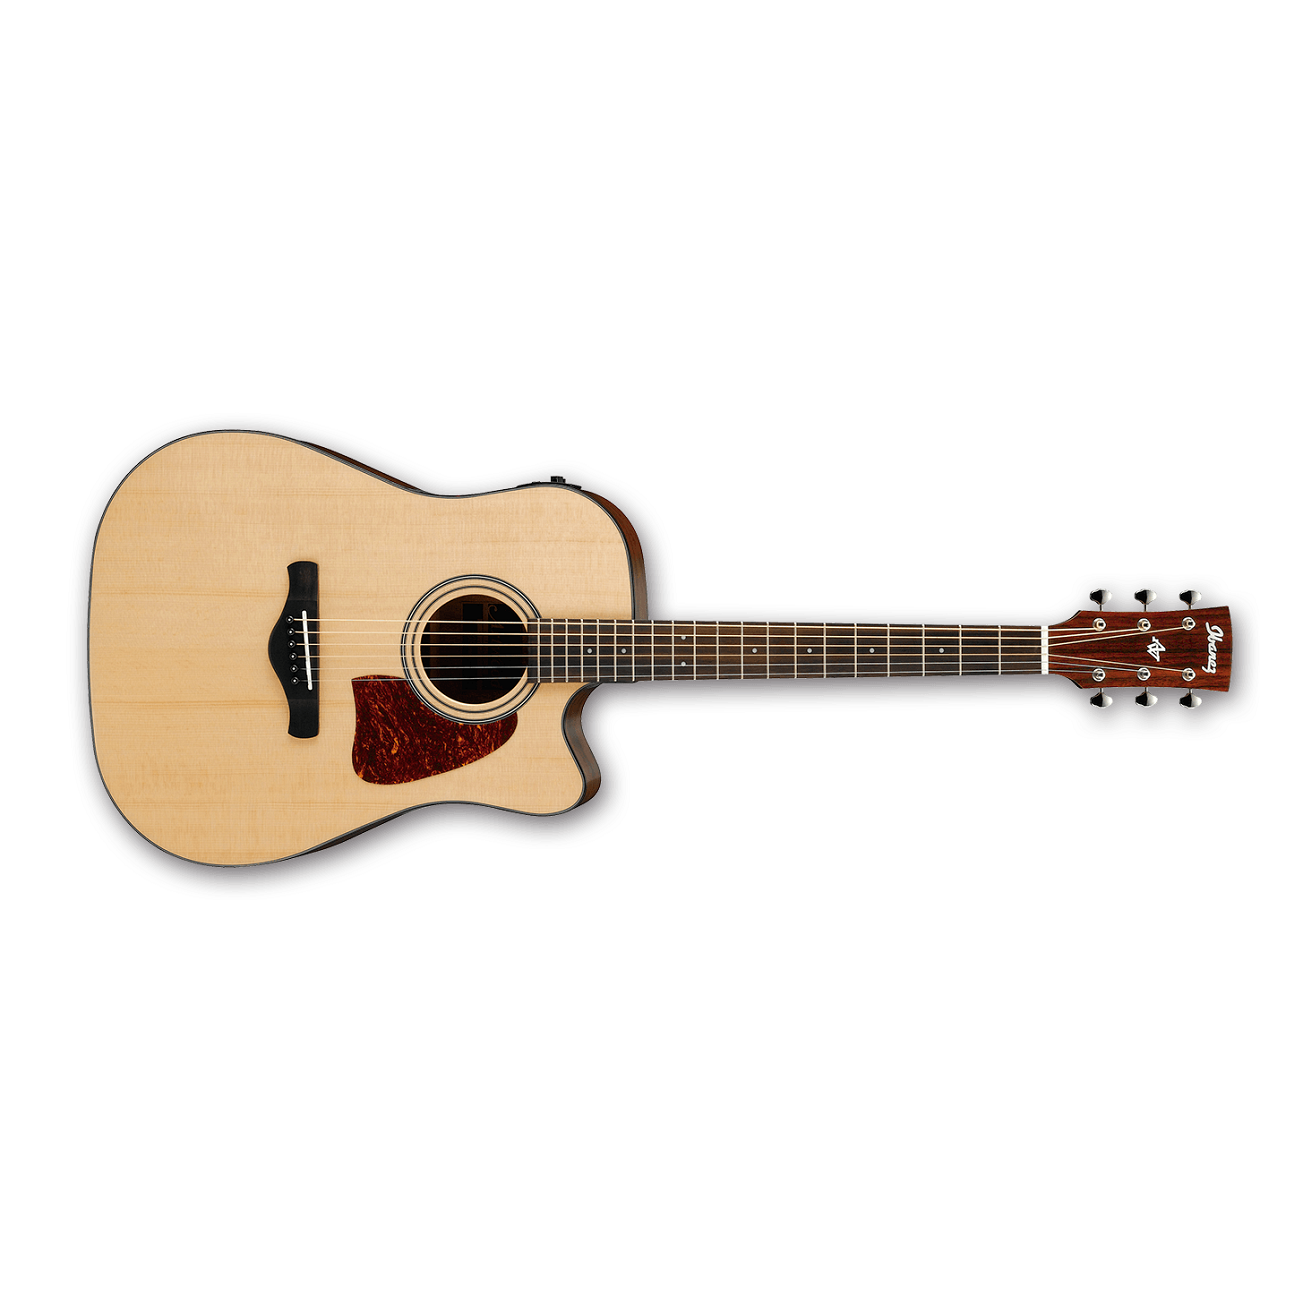 Ibanez Aw400ce Artwood Dreadnought Cutaway Acoustic Electric Guitar In Natural With Cedar Top Acoustic Electric Guitar Acoustic Electric Guitar